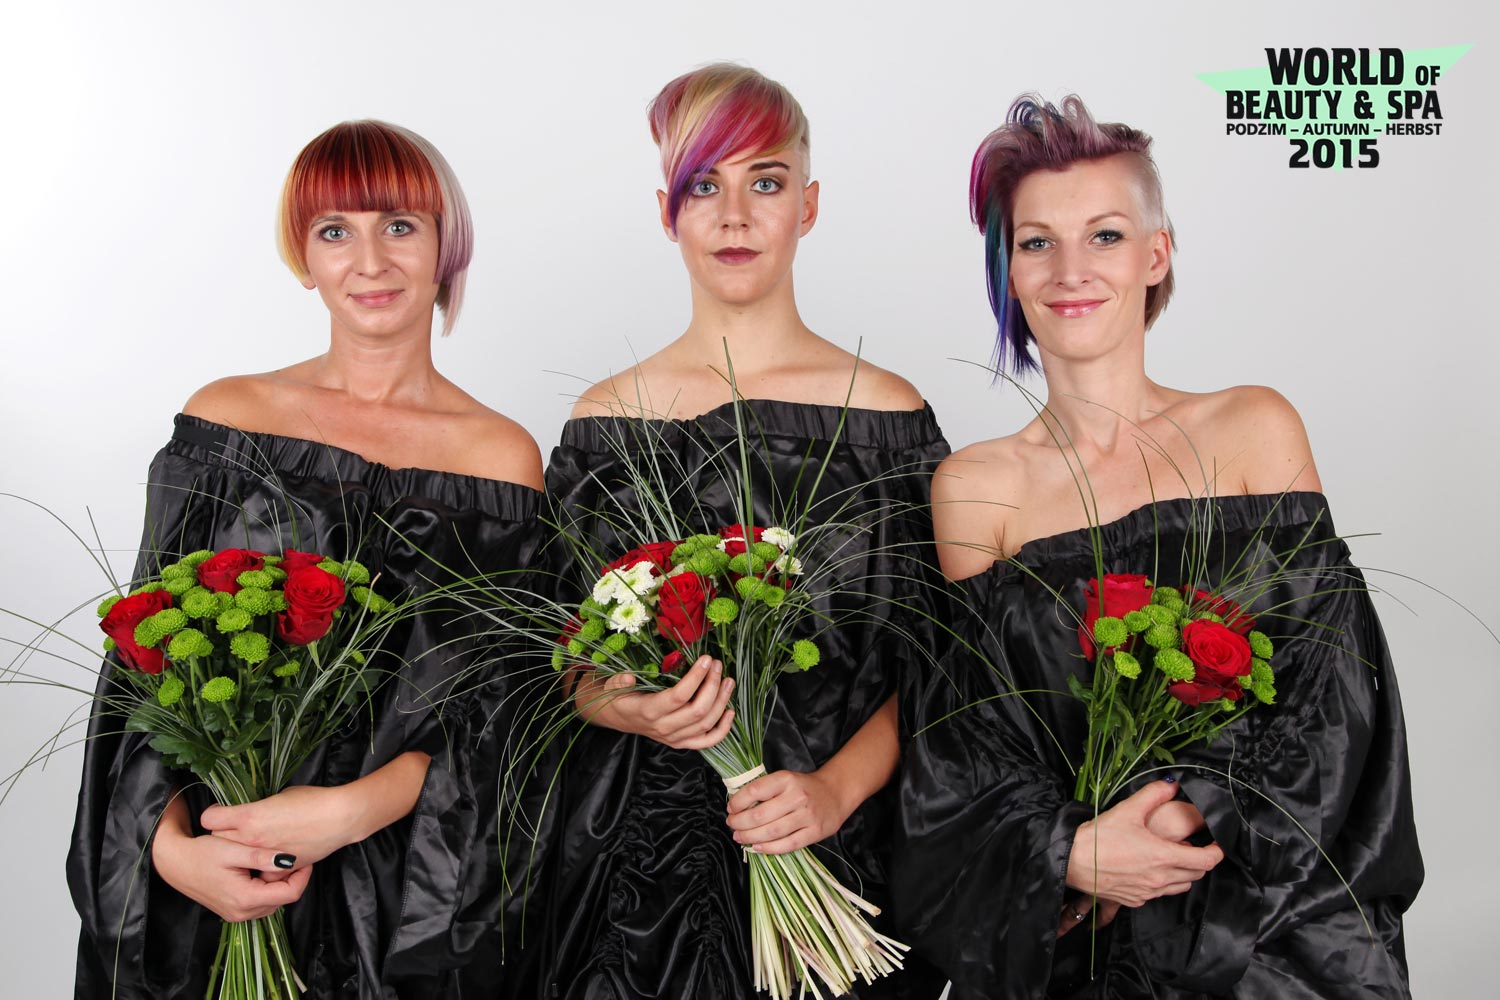 The best hairstyles from competition Inspiration 2016: 1st place Patrik Hagara, Sanett, Prague; 2nd place Marie Malatova, Salon Inspiration, Tachov; 3rd place Andrea Mala, Salon de coiffure, Nova Paka.